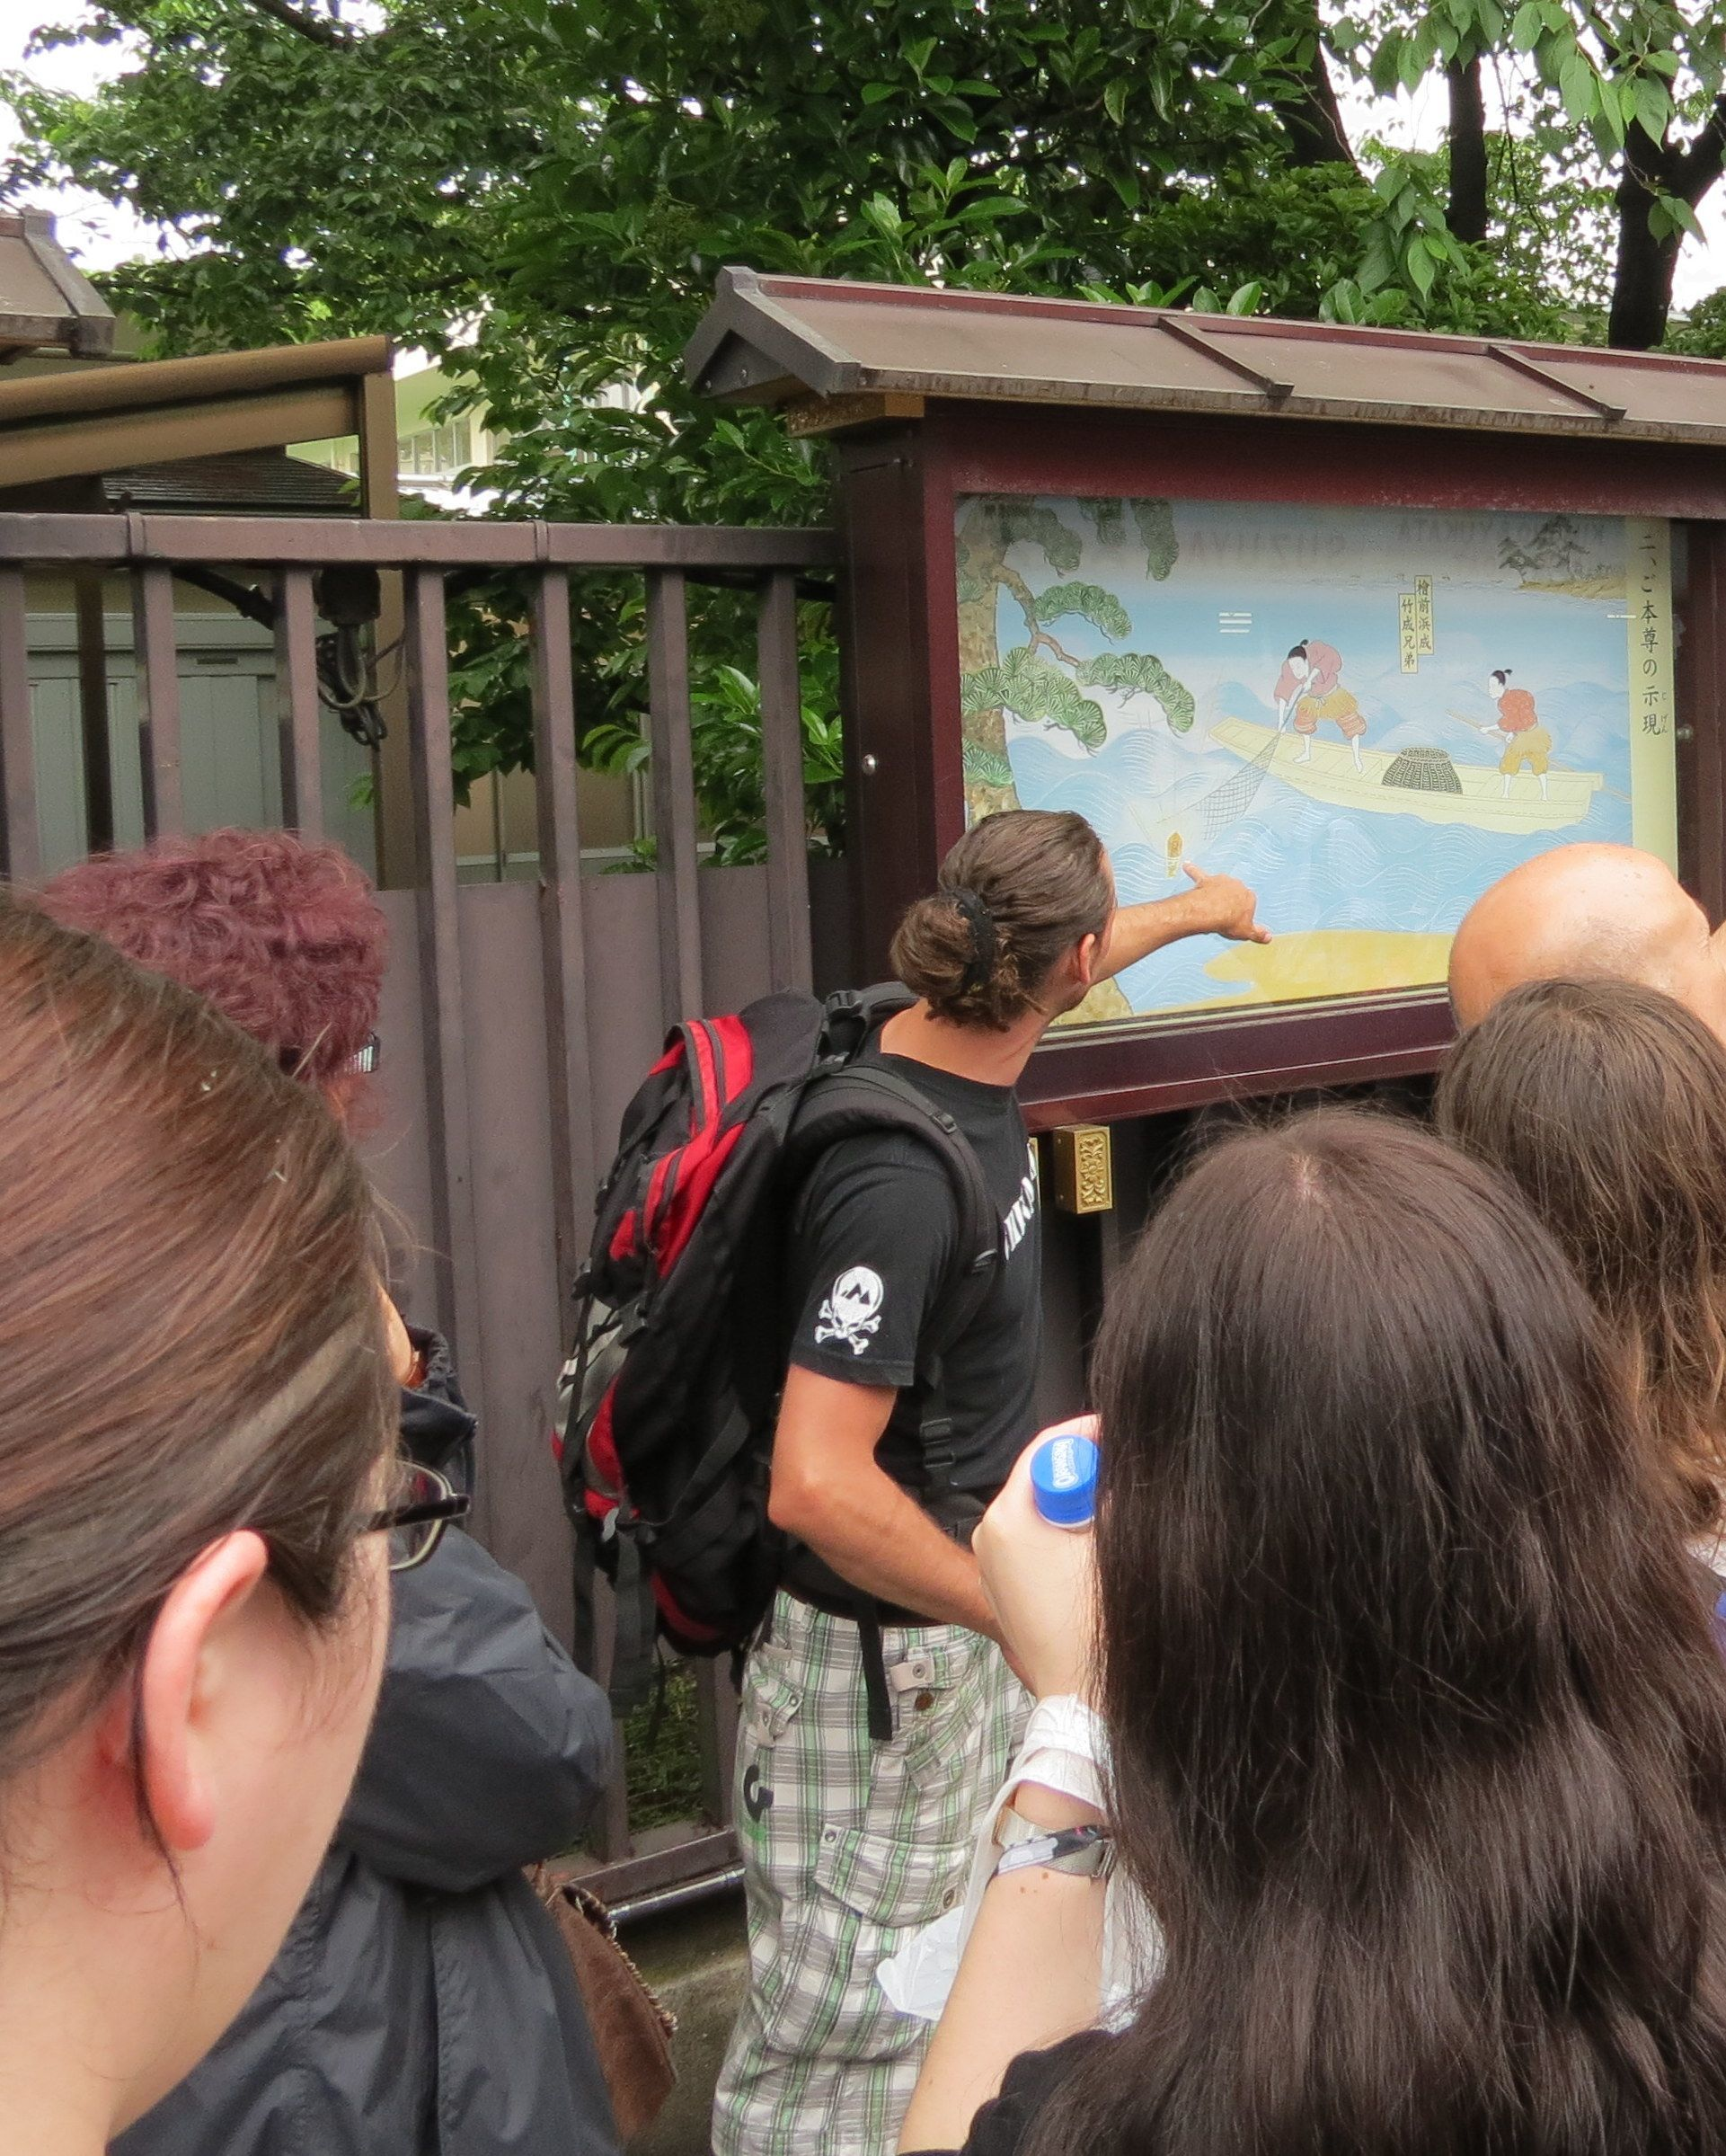 Our Tour Leader sharing some brief Japanese history with the group